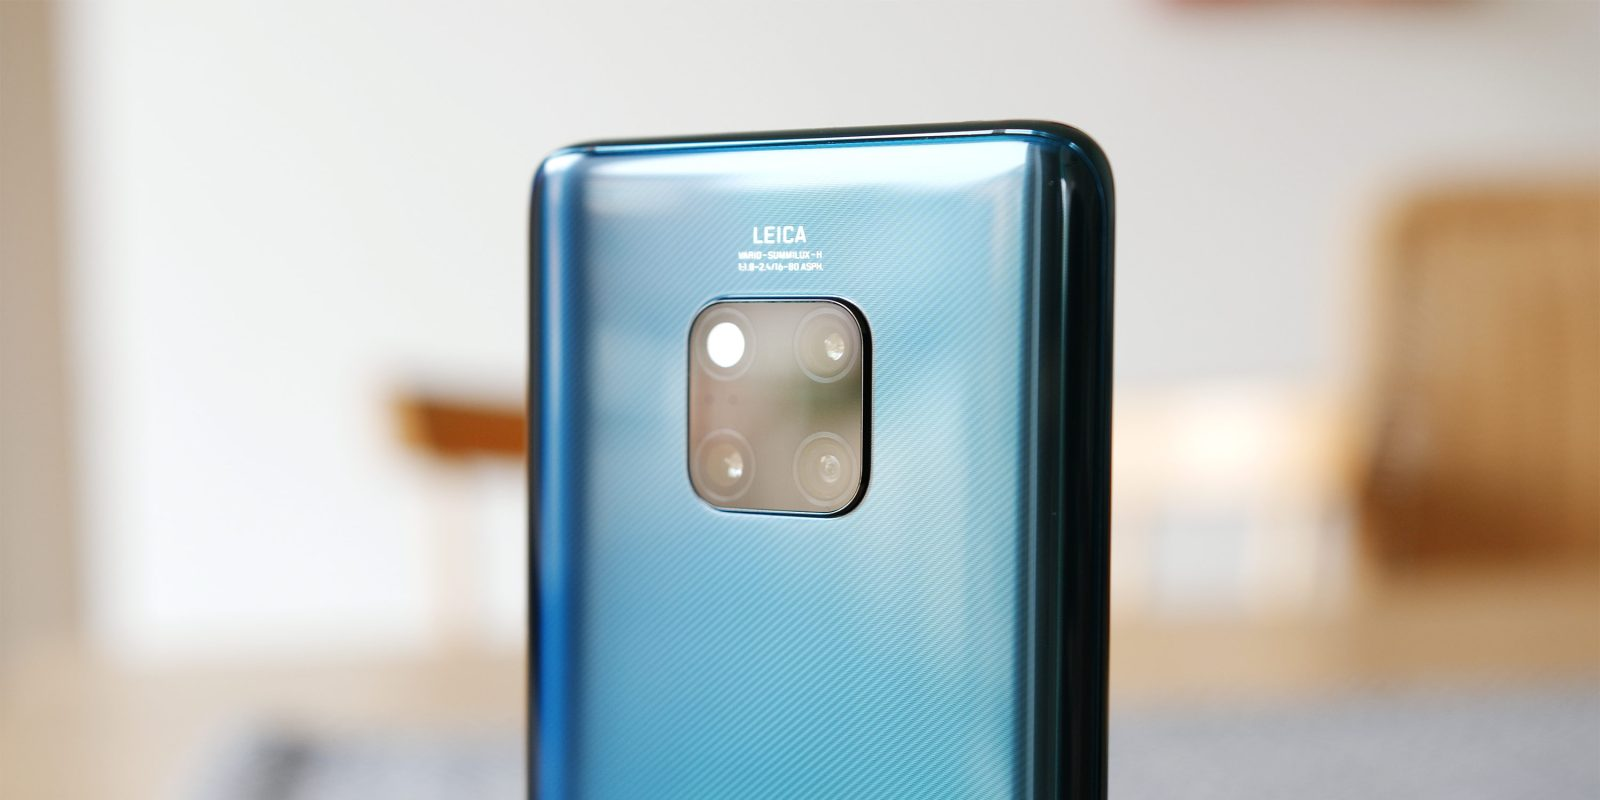 How to install google play store on huawei mate 20 pro | Peatix